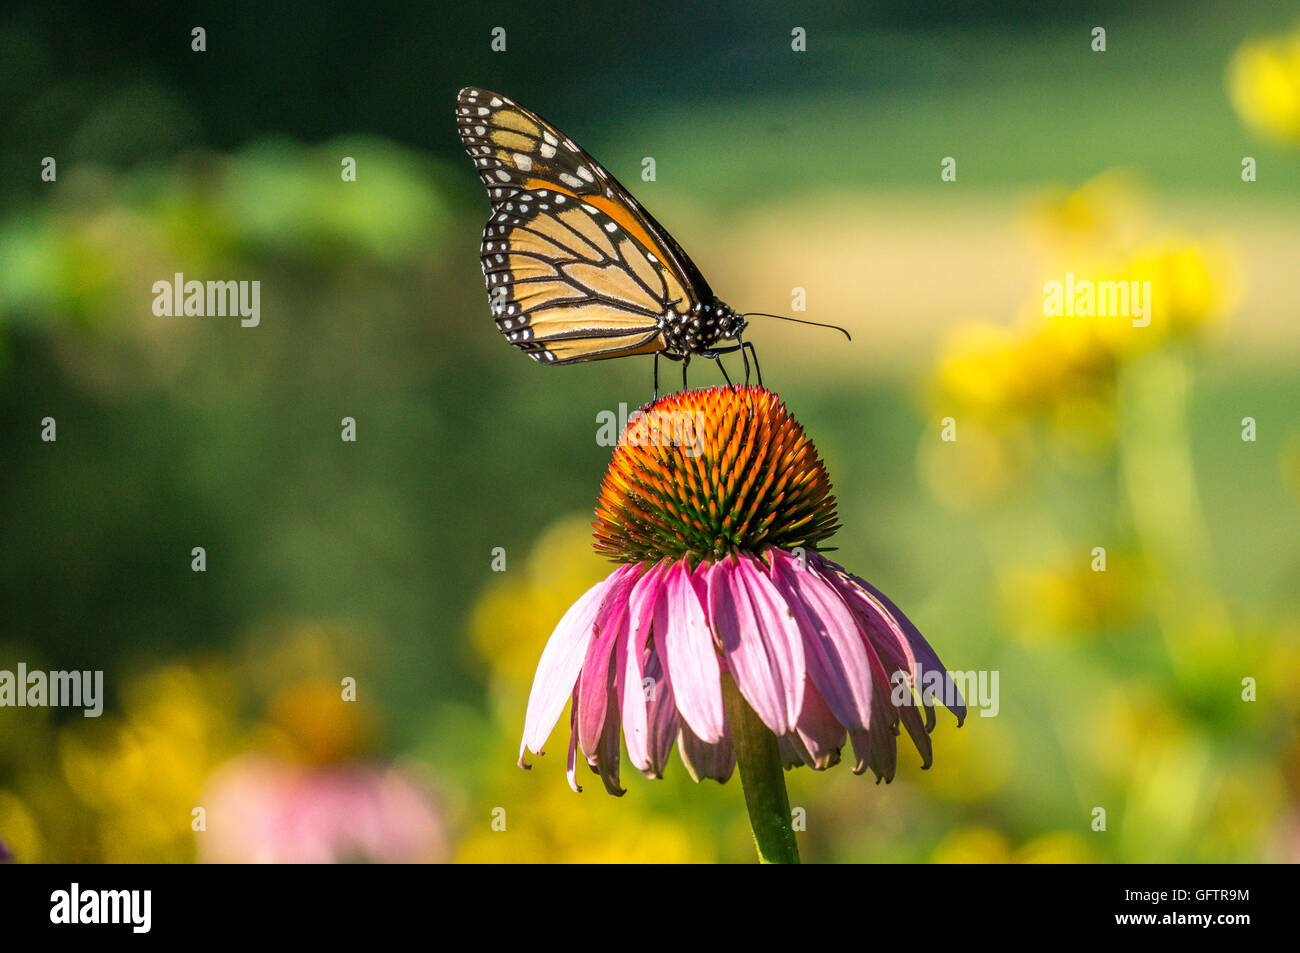 monarch butterfly,Danaus plexippus is a milkweed butterfly (subfamily Danainae) in the family Nymphalidae - Stock Image